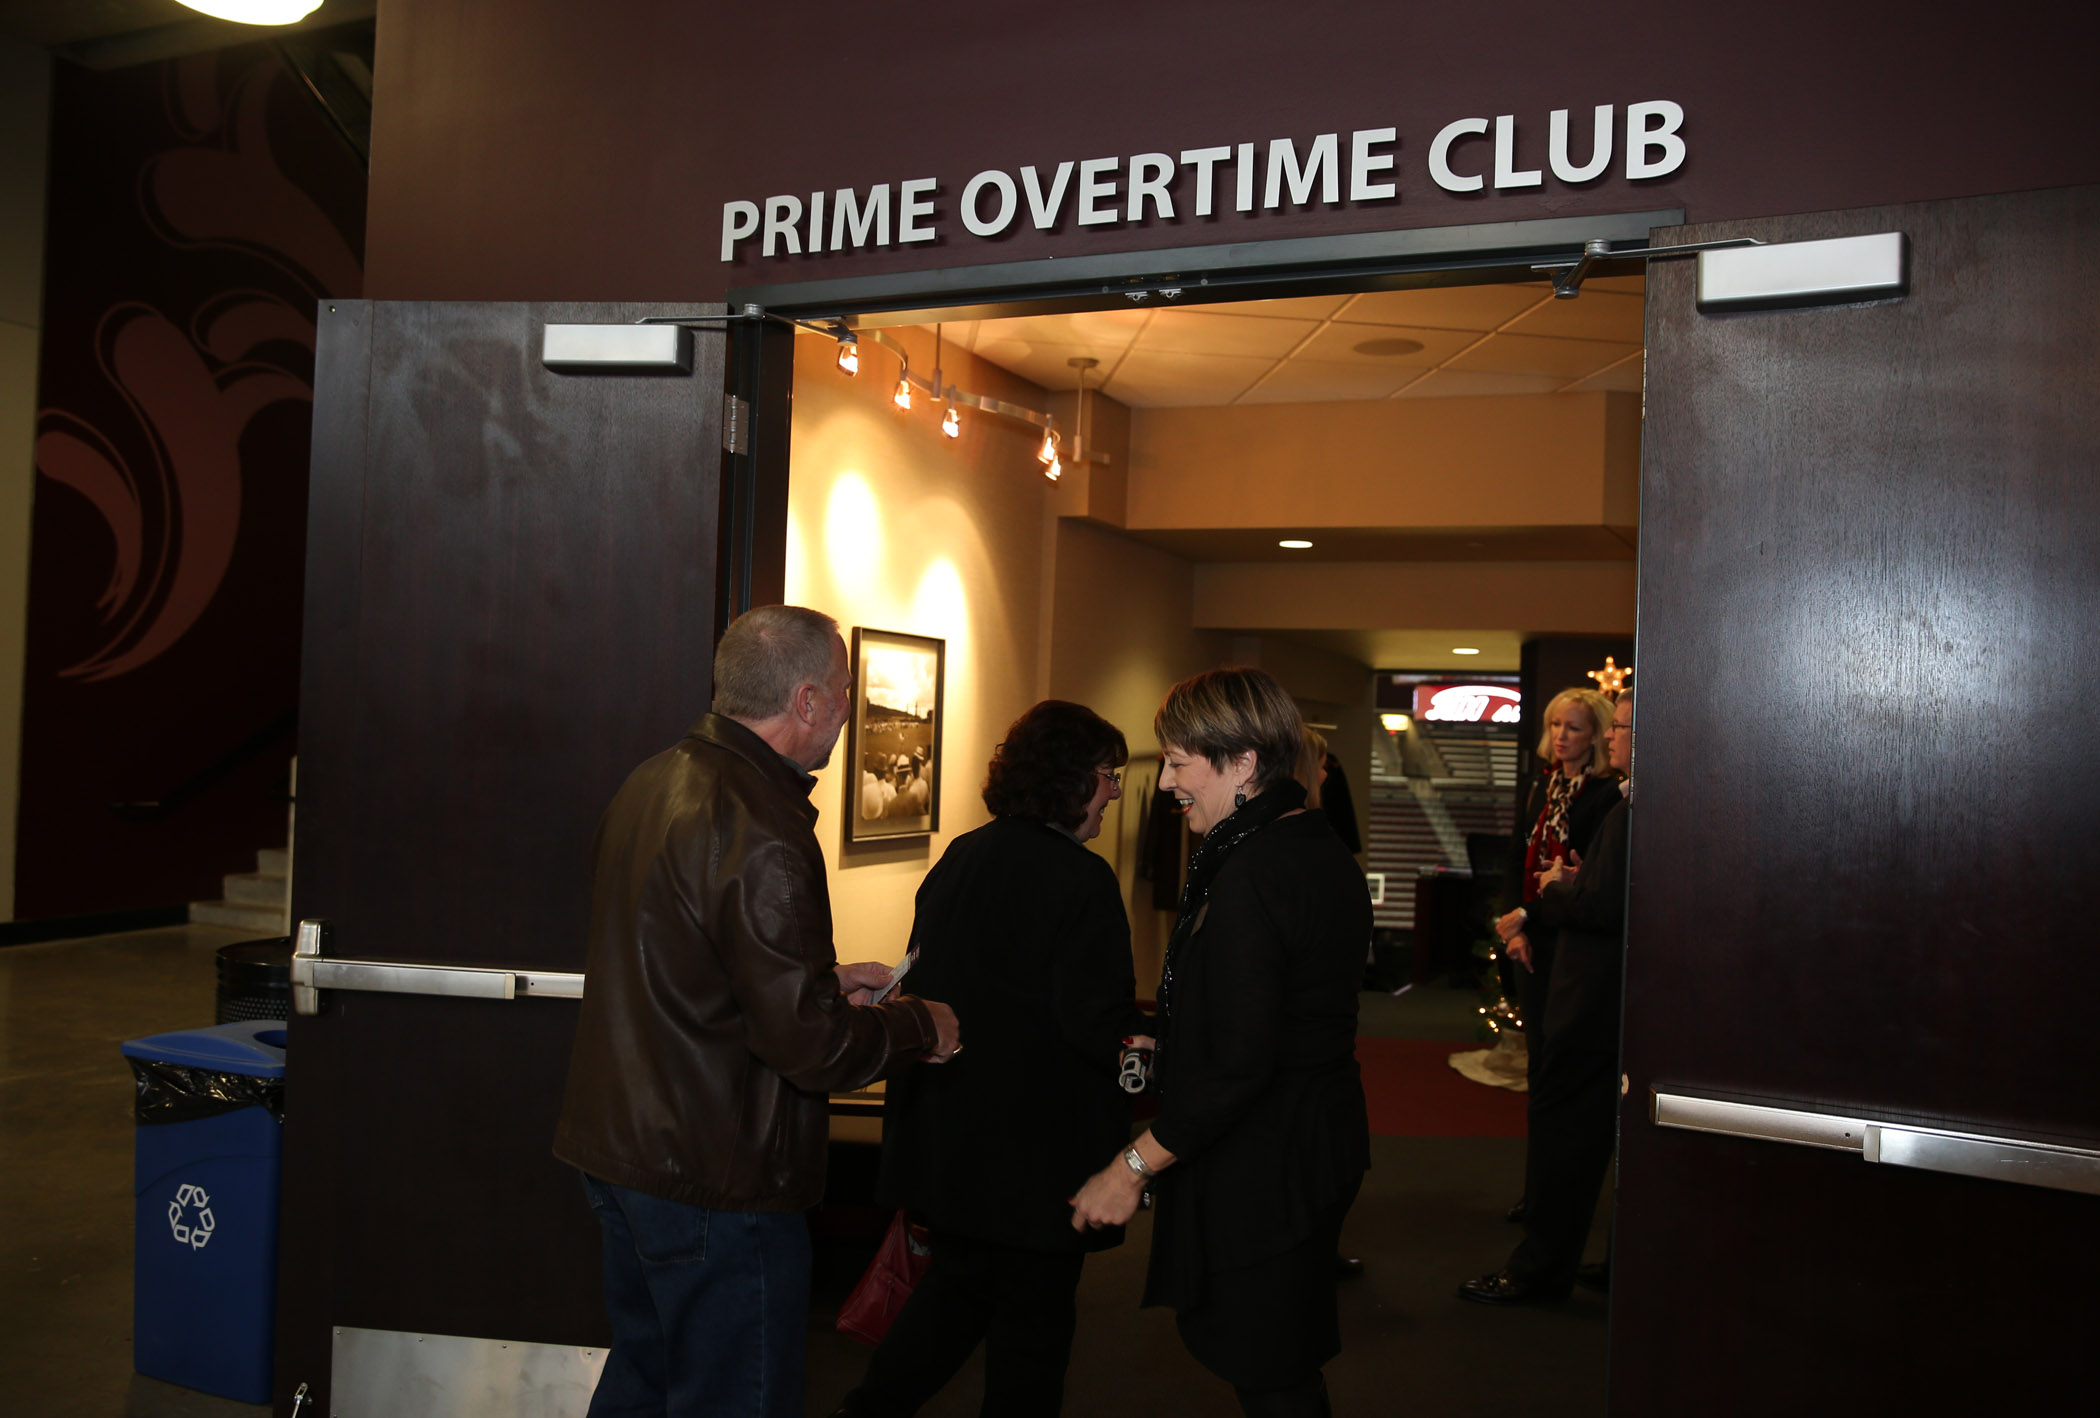 Prime Overtime Club Buffet Menu – January 6, 7, 11